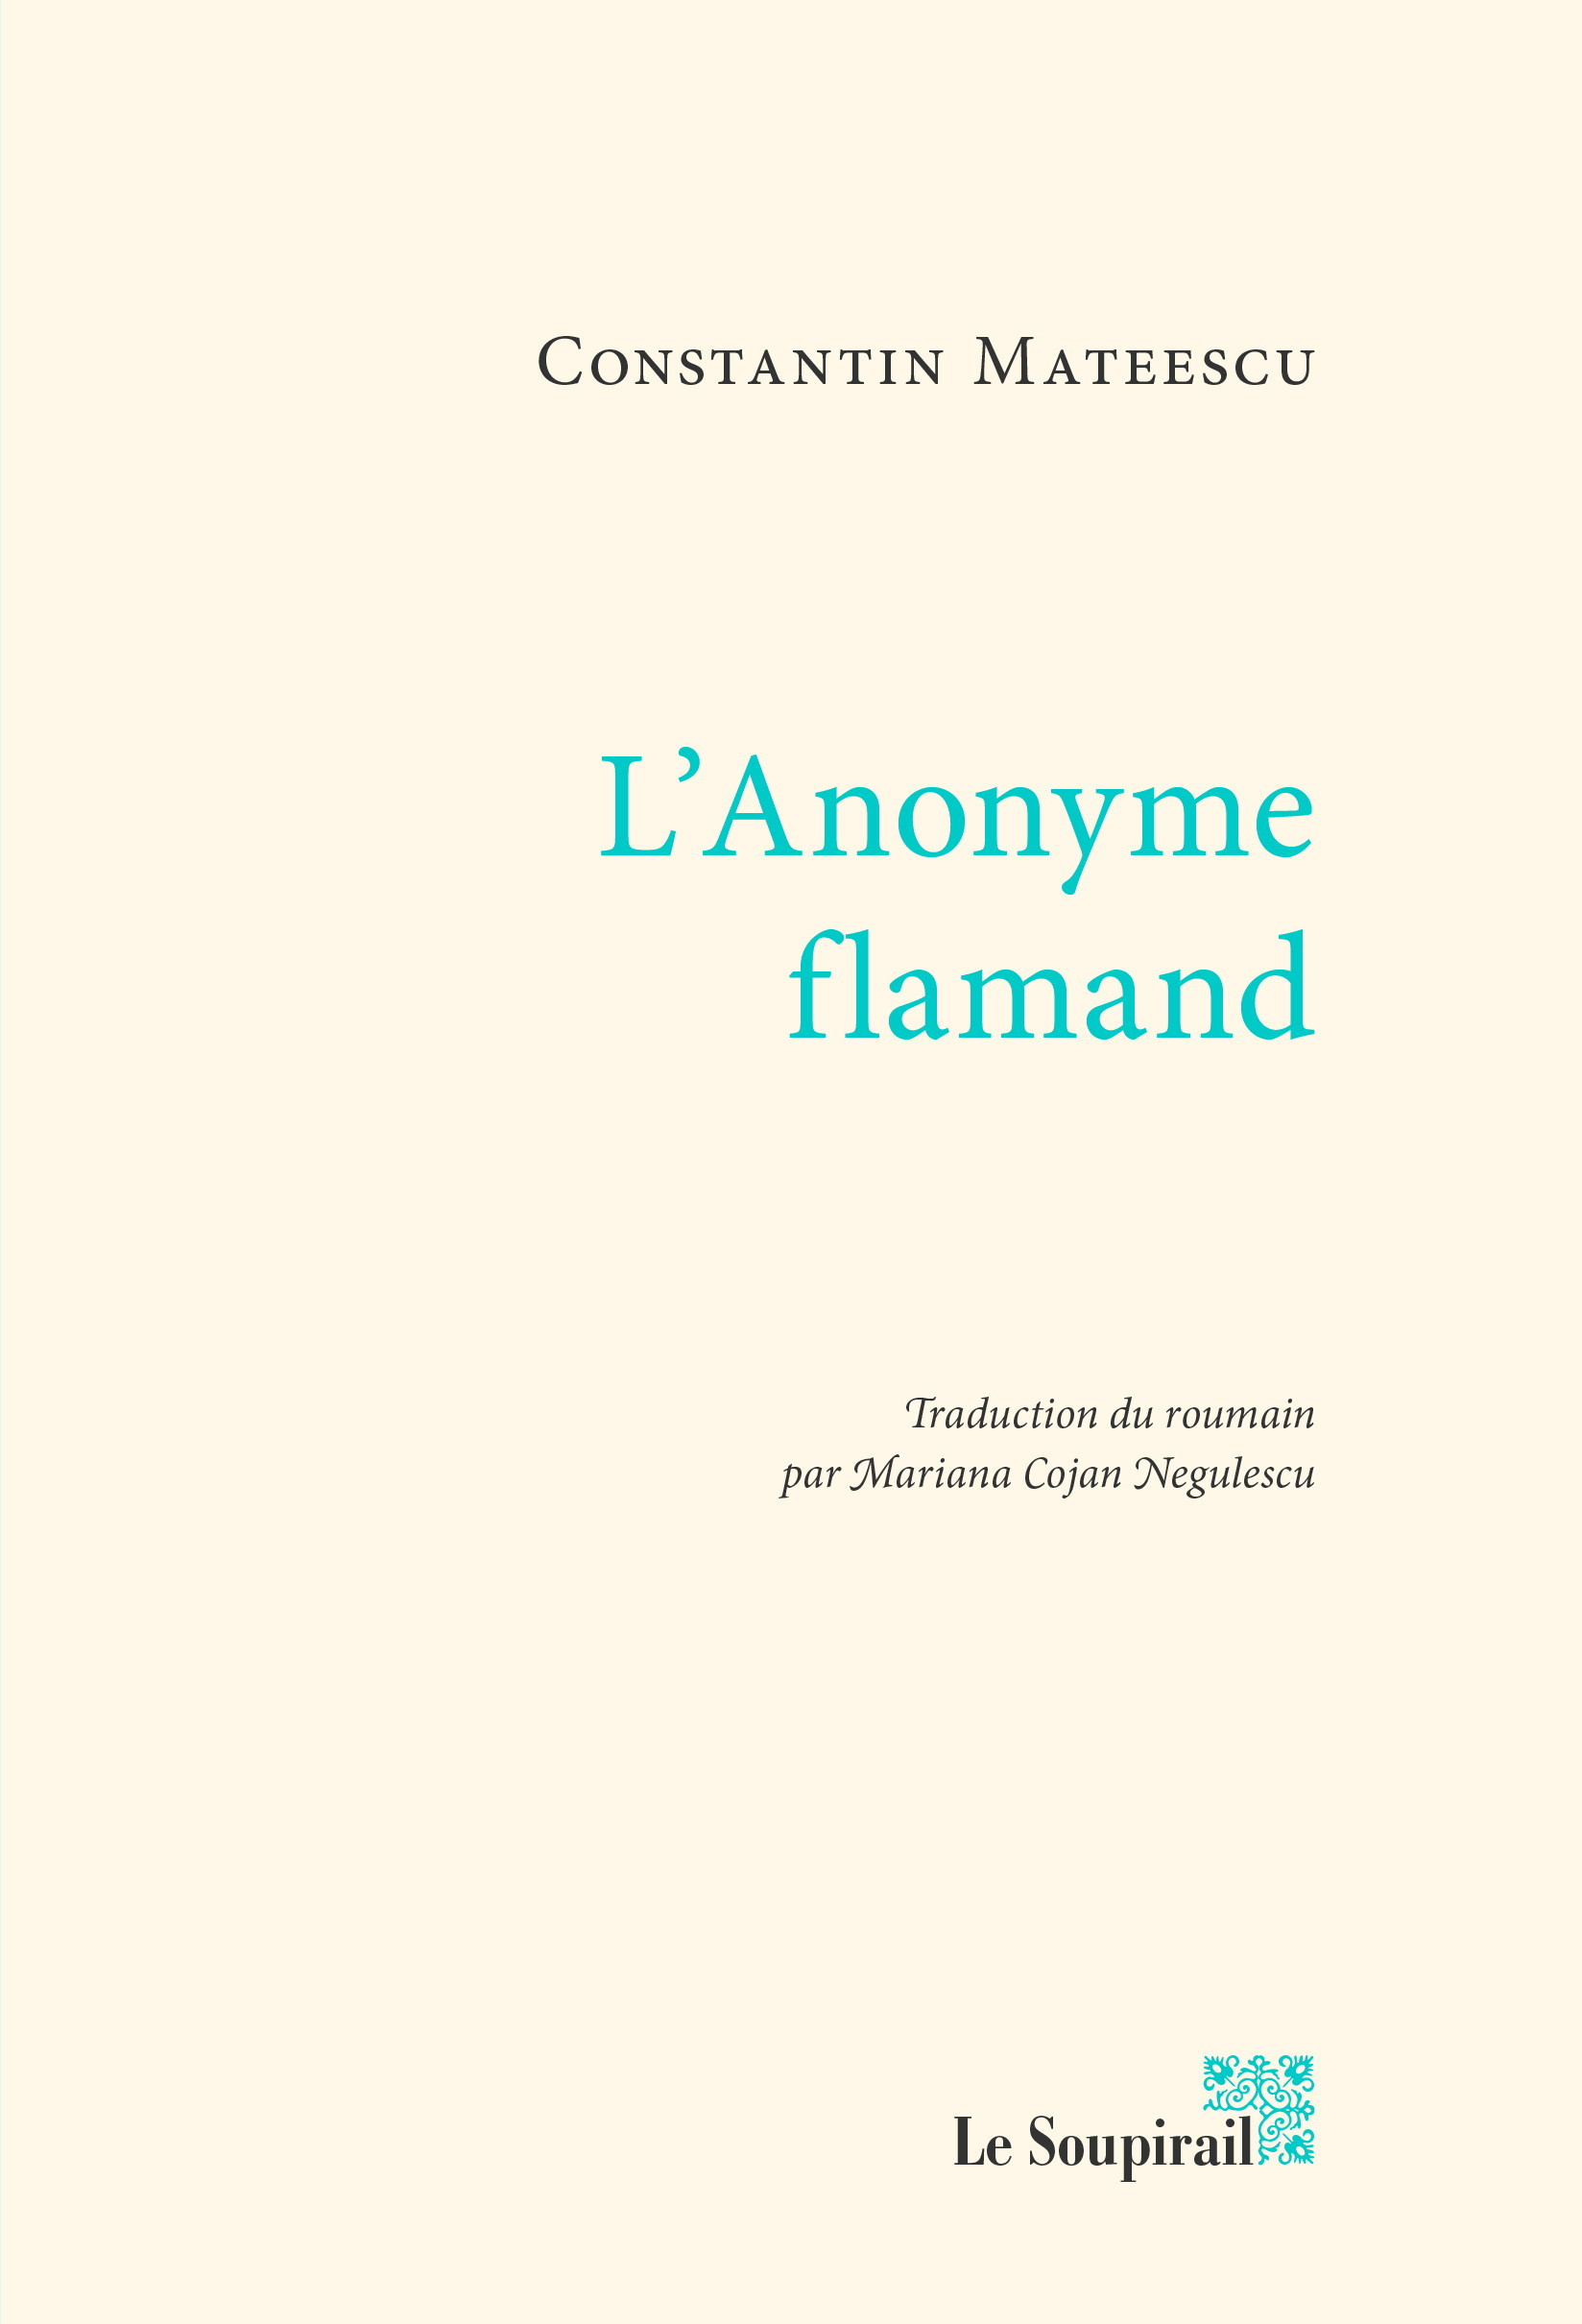 L'ANONYME FLAMAND